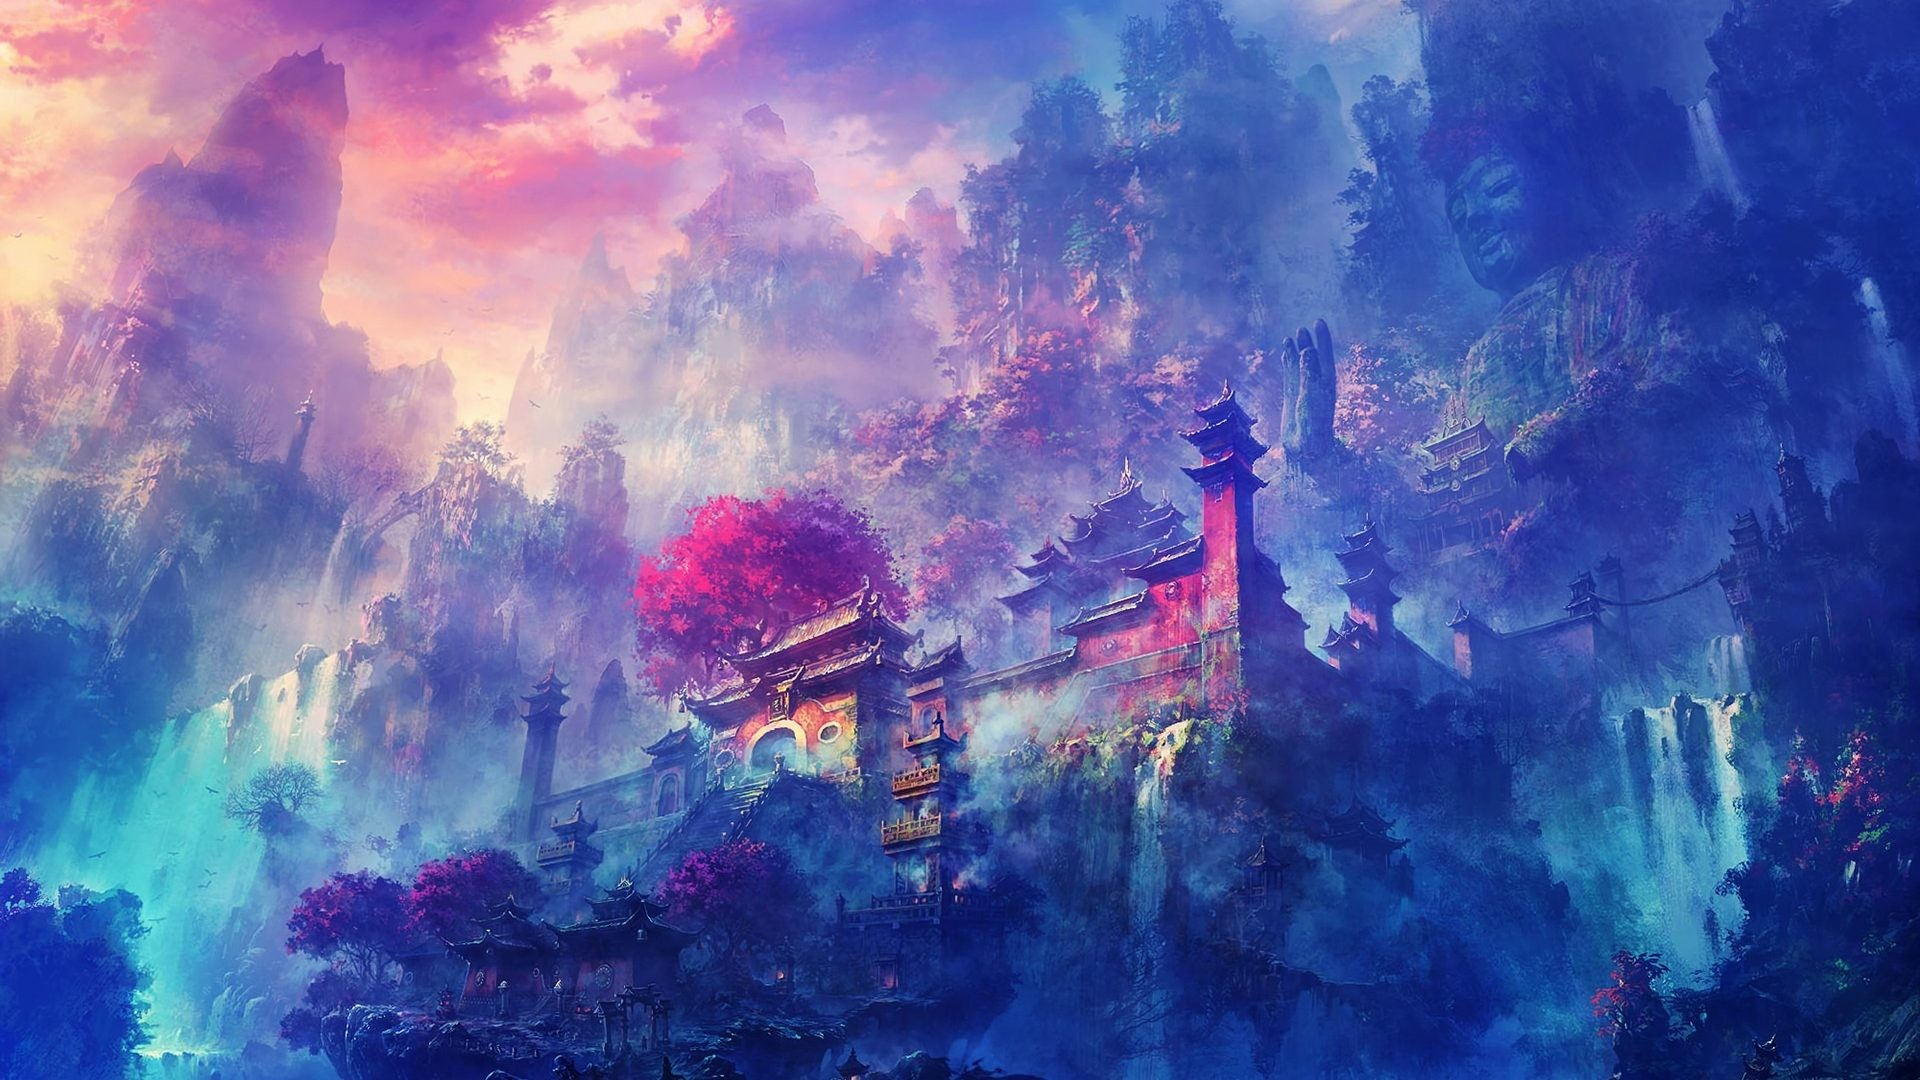 Anime Scenery Wallpaper (48+ Images